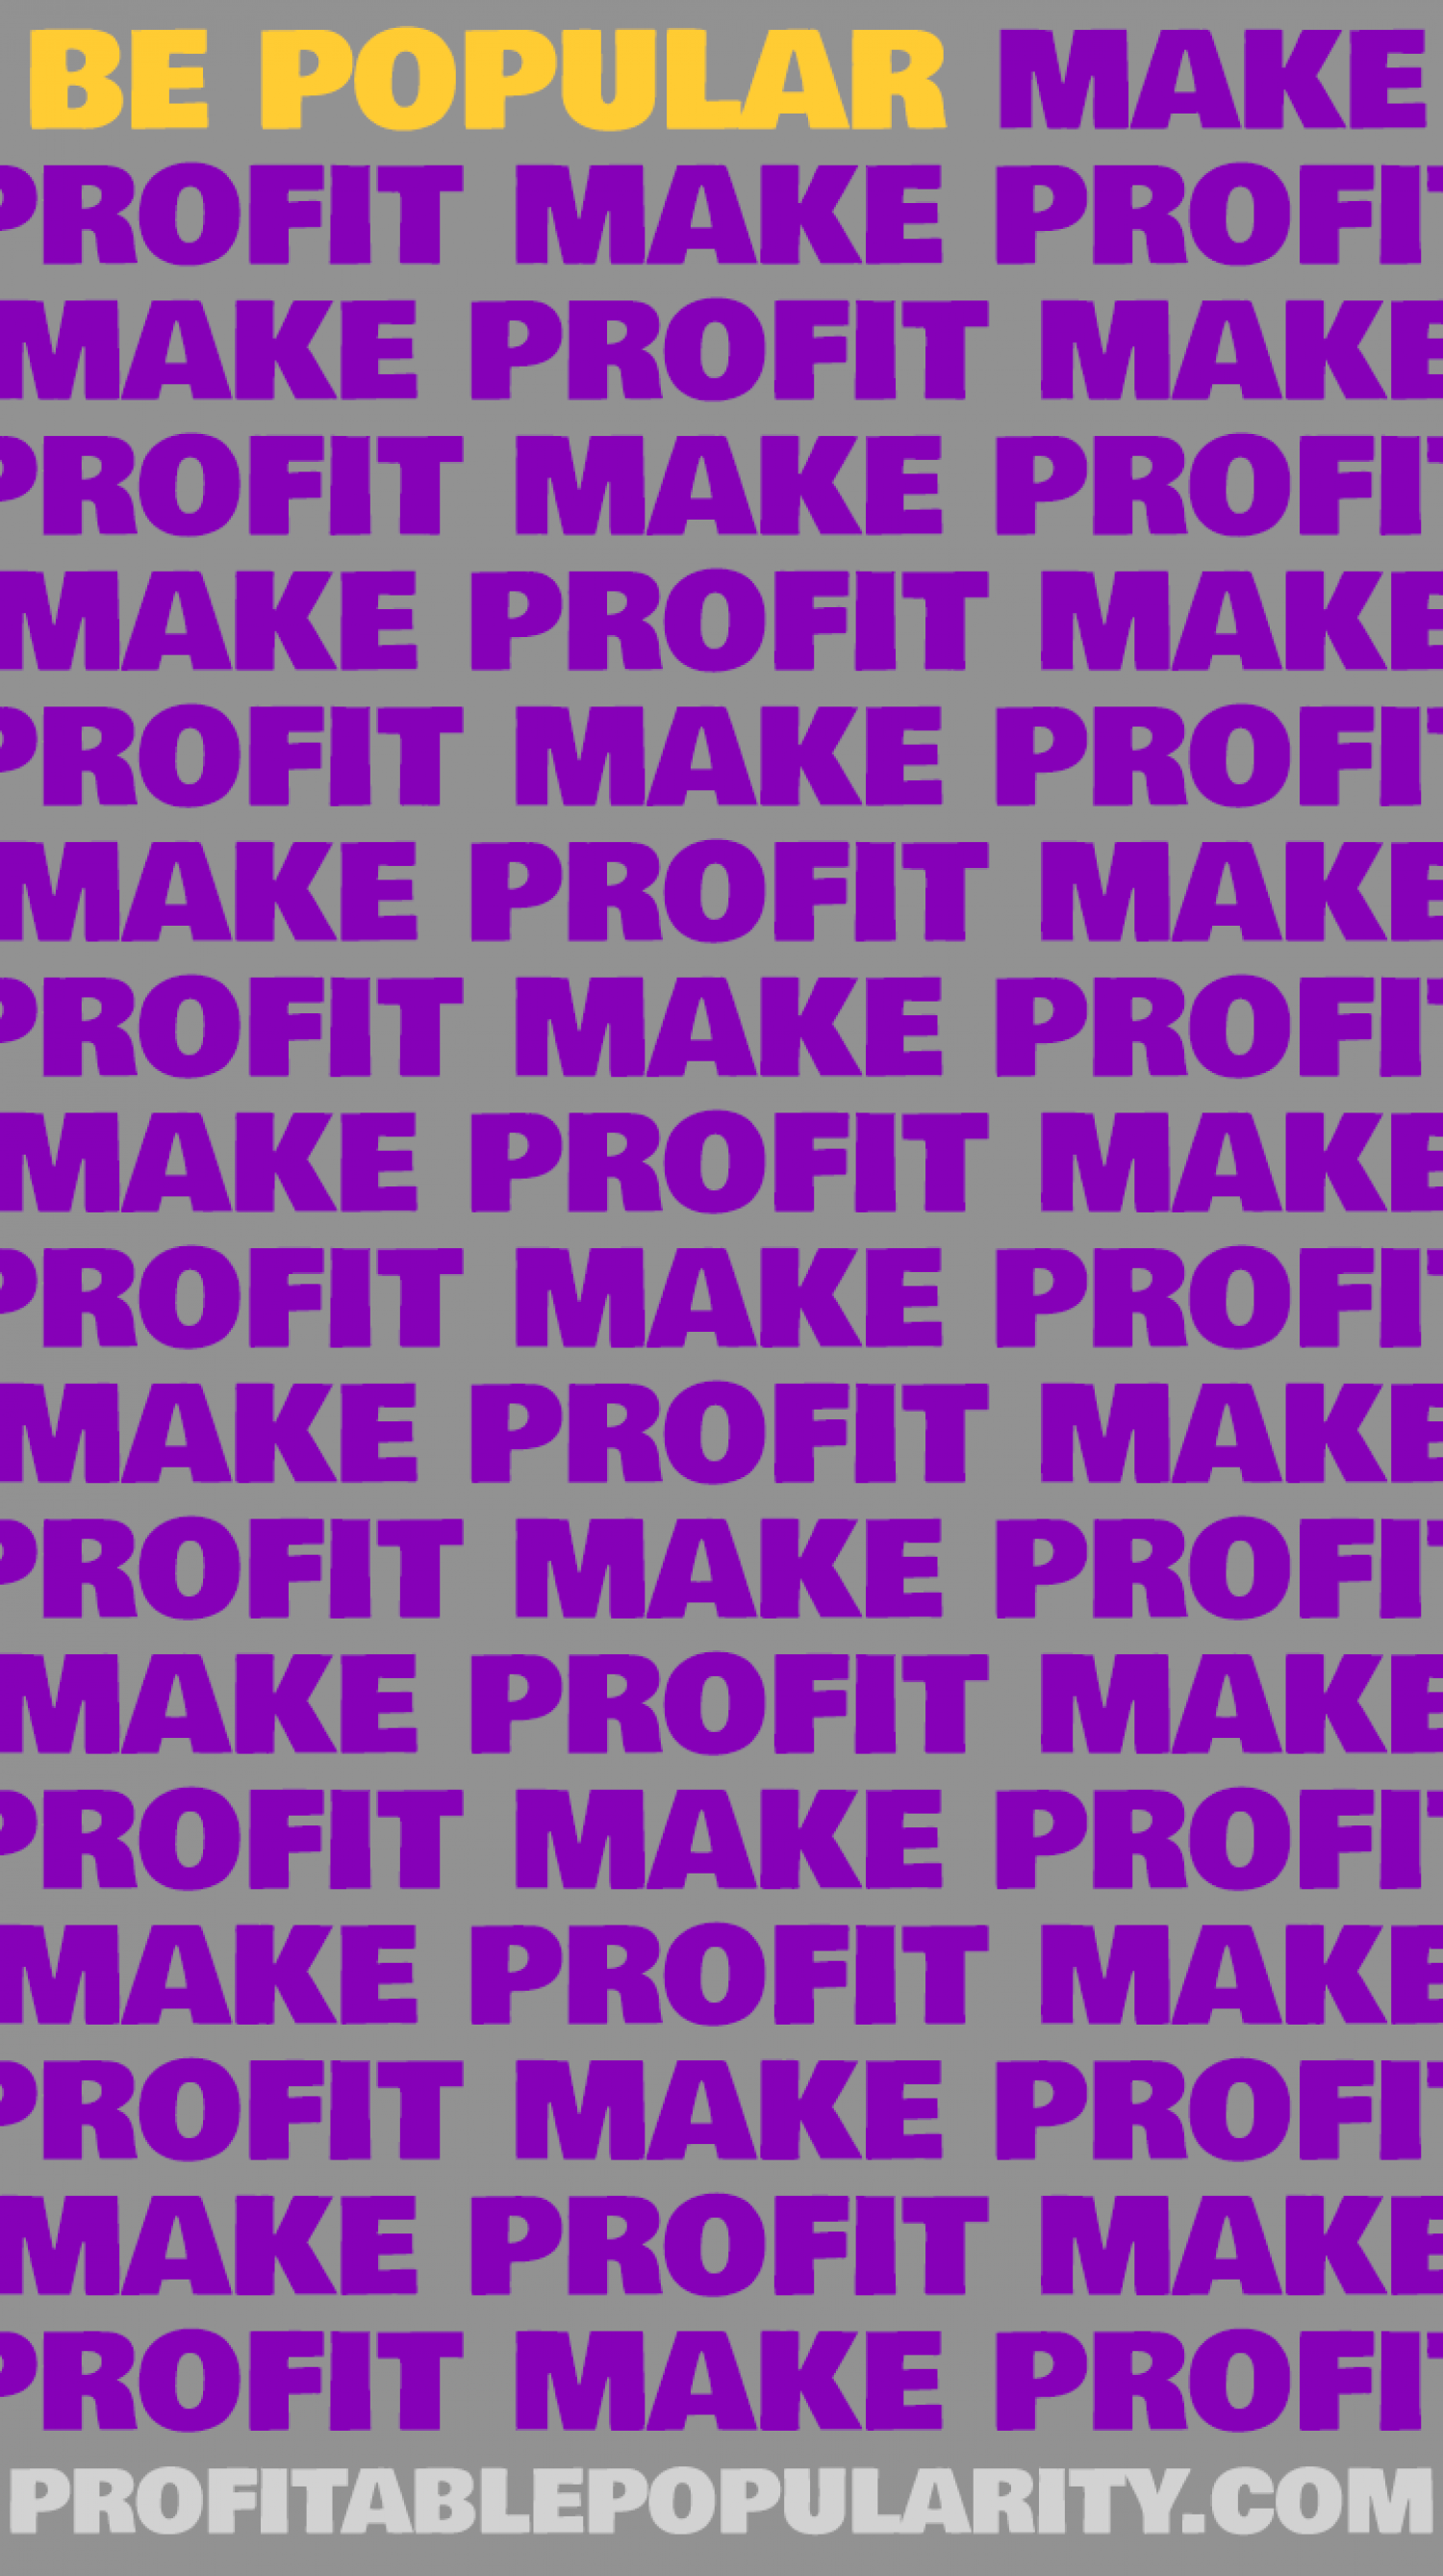 Be Popular, Make Profit Infographic